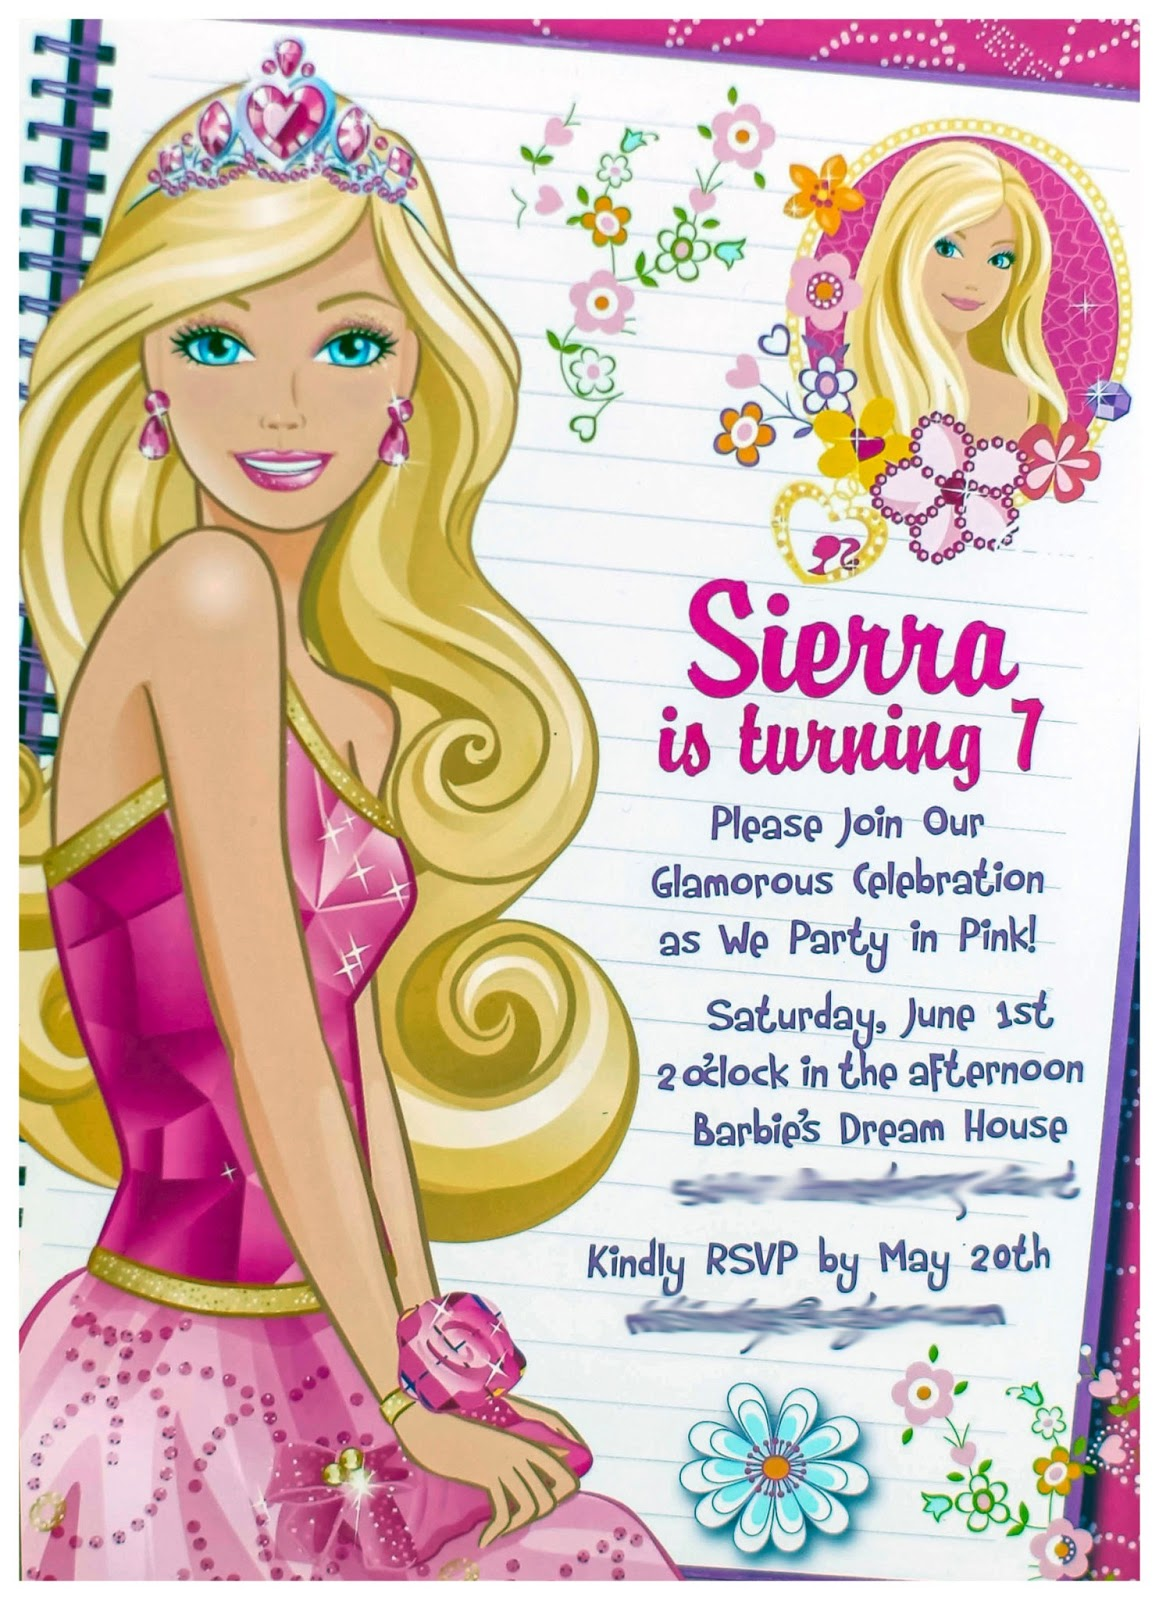 barbie theme birthday invitation card ; Pink-Barbie-Birthday-Party-Virginia-Photographer-Limefish-Studio-WEB23